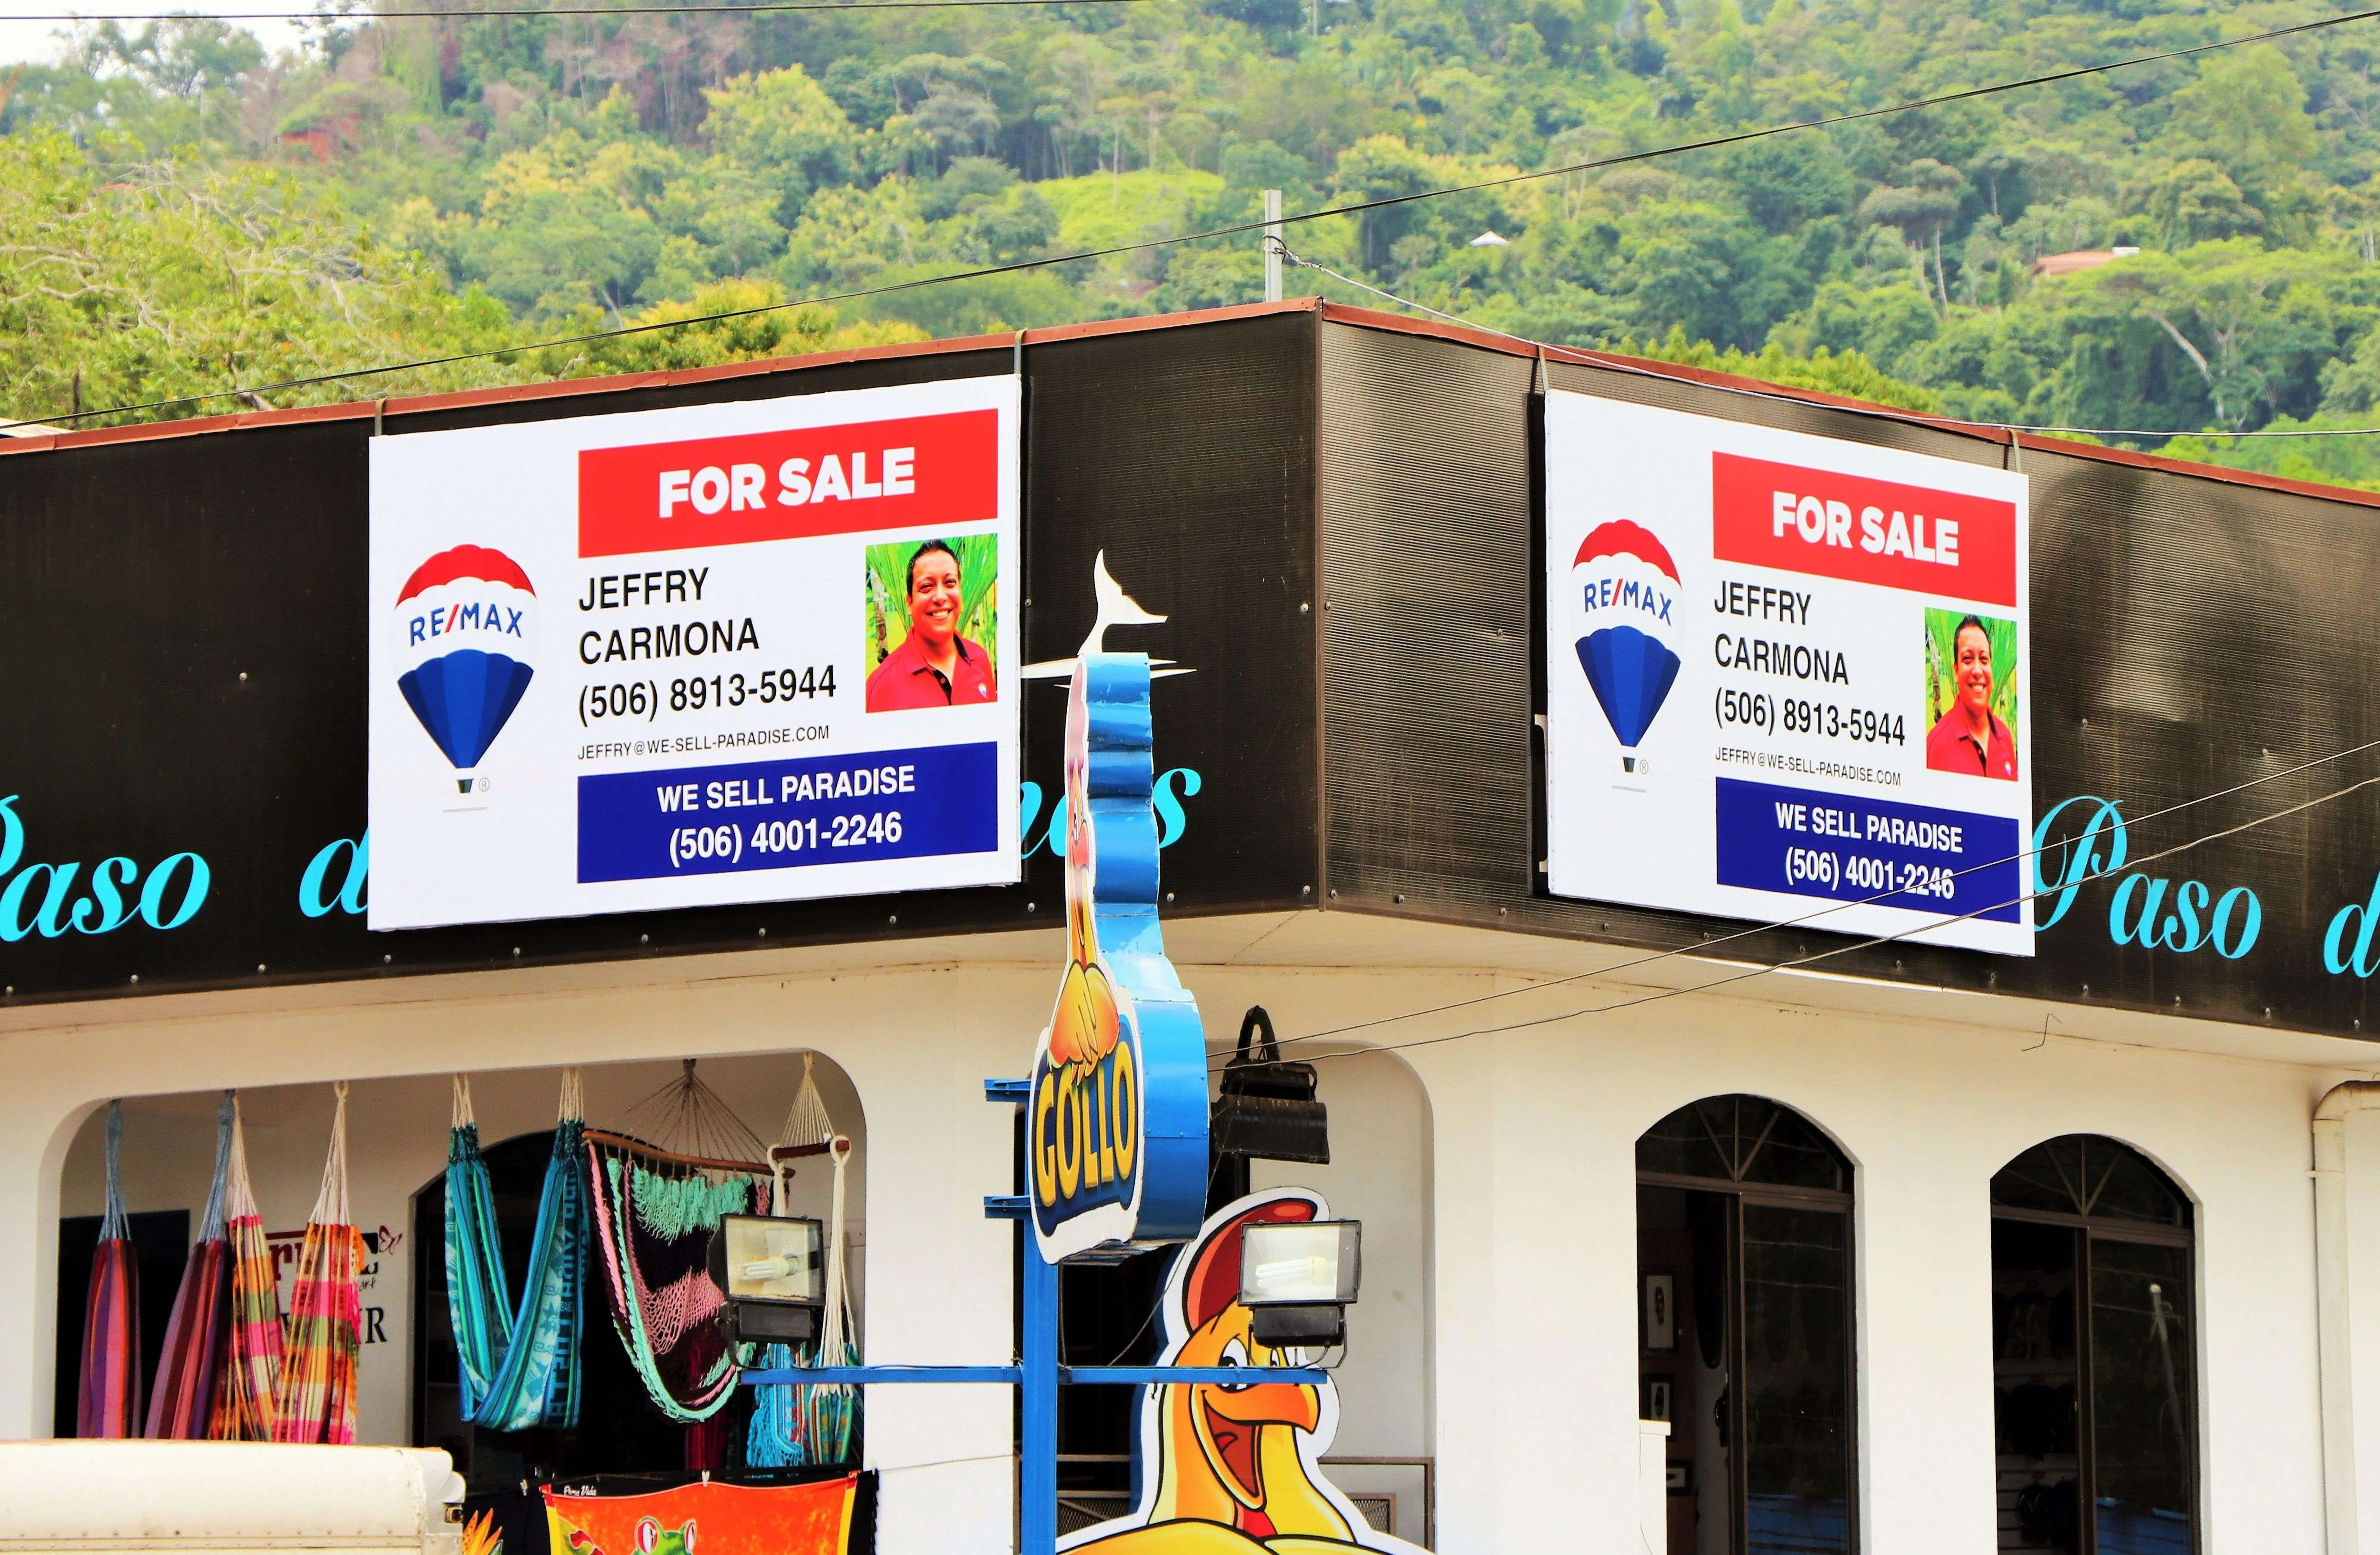 We Sell Paradise: Listing Agreements Contratos de Exclusividad